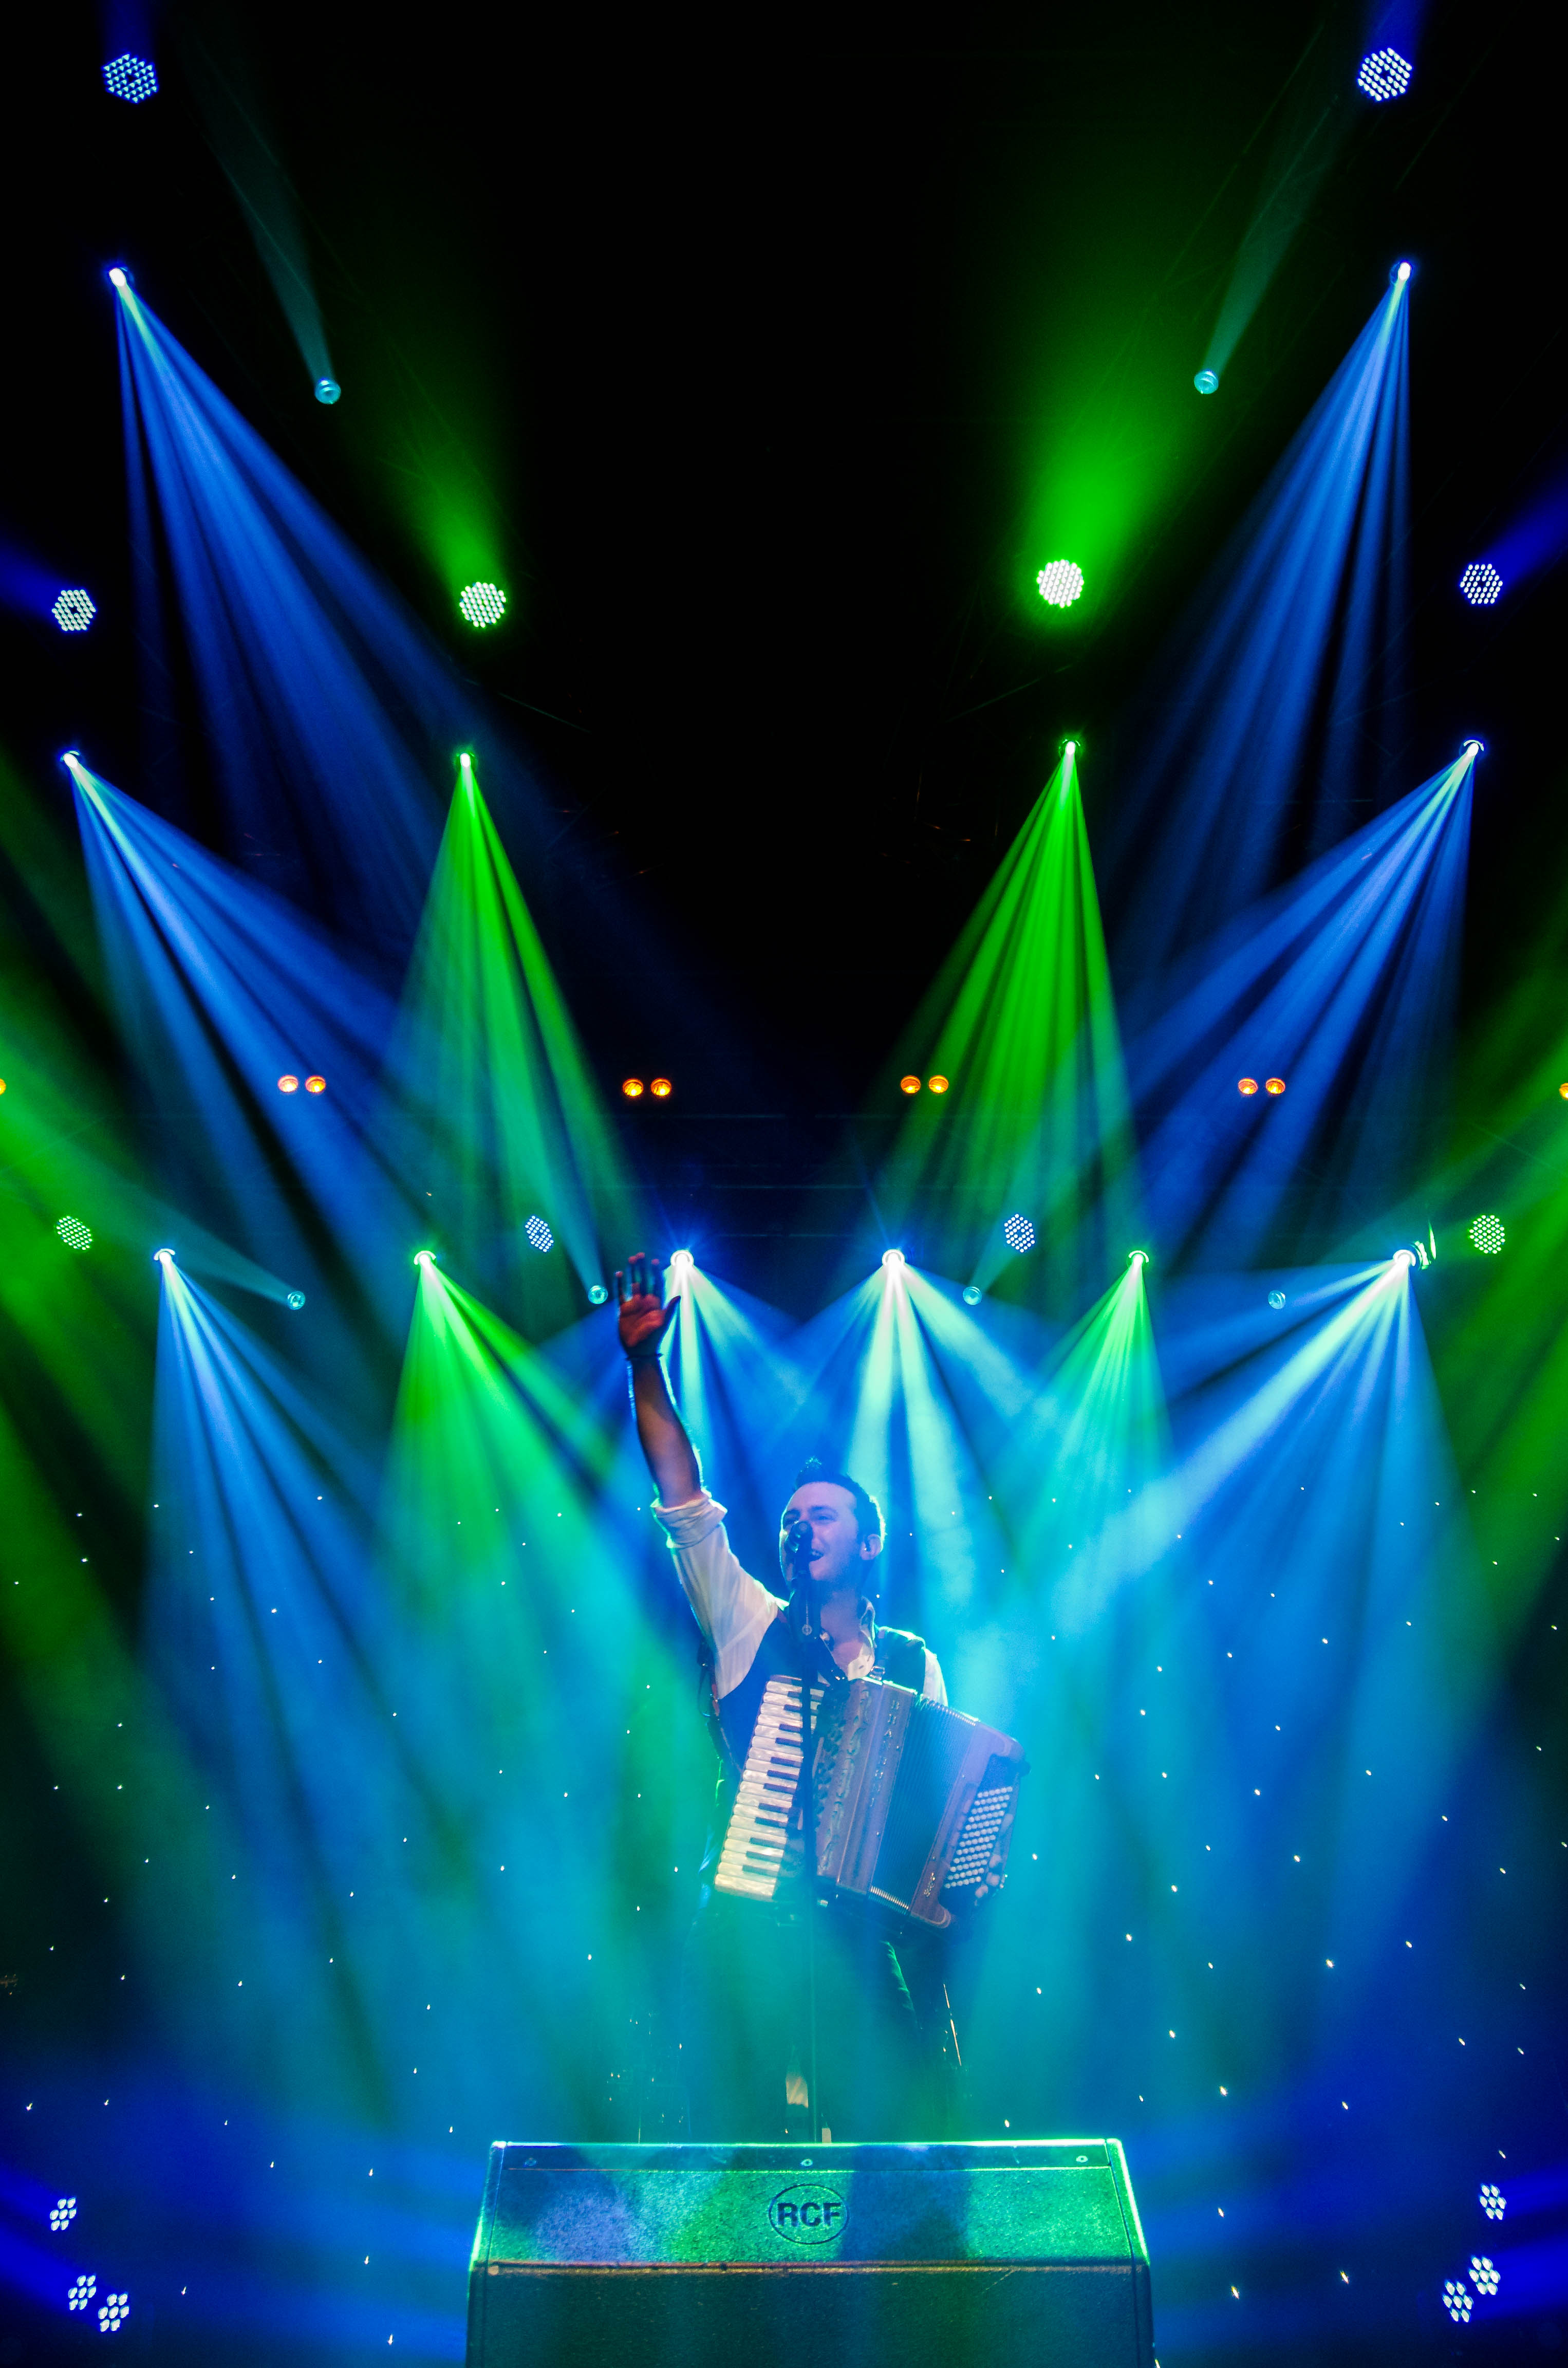 nathan-carter-at-the-marquee-cork-by-sean-smyth-15-6-14-27-of-55